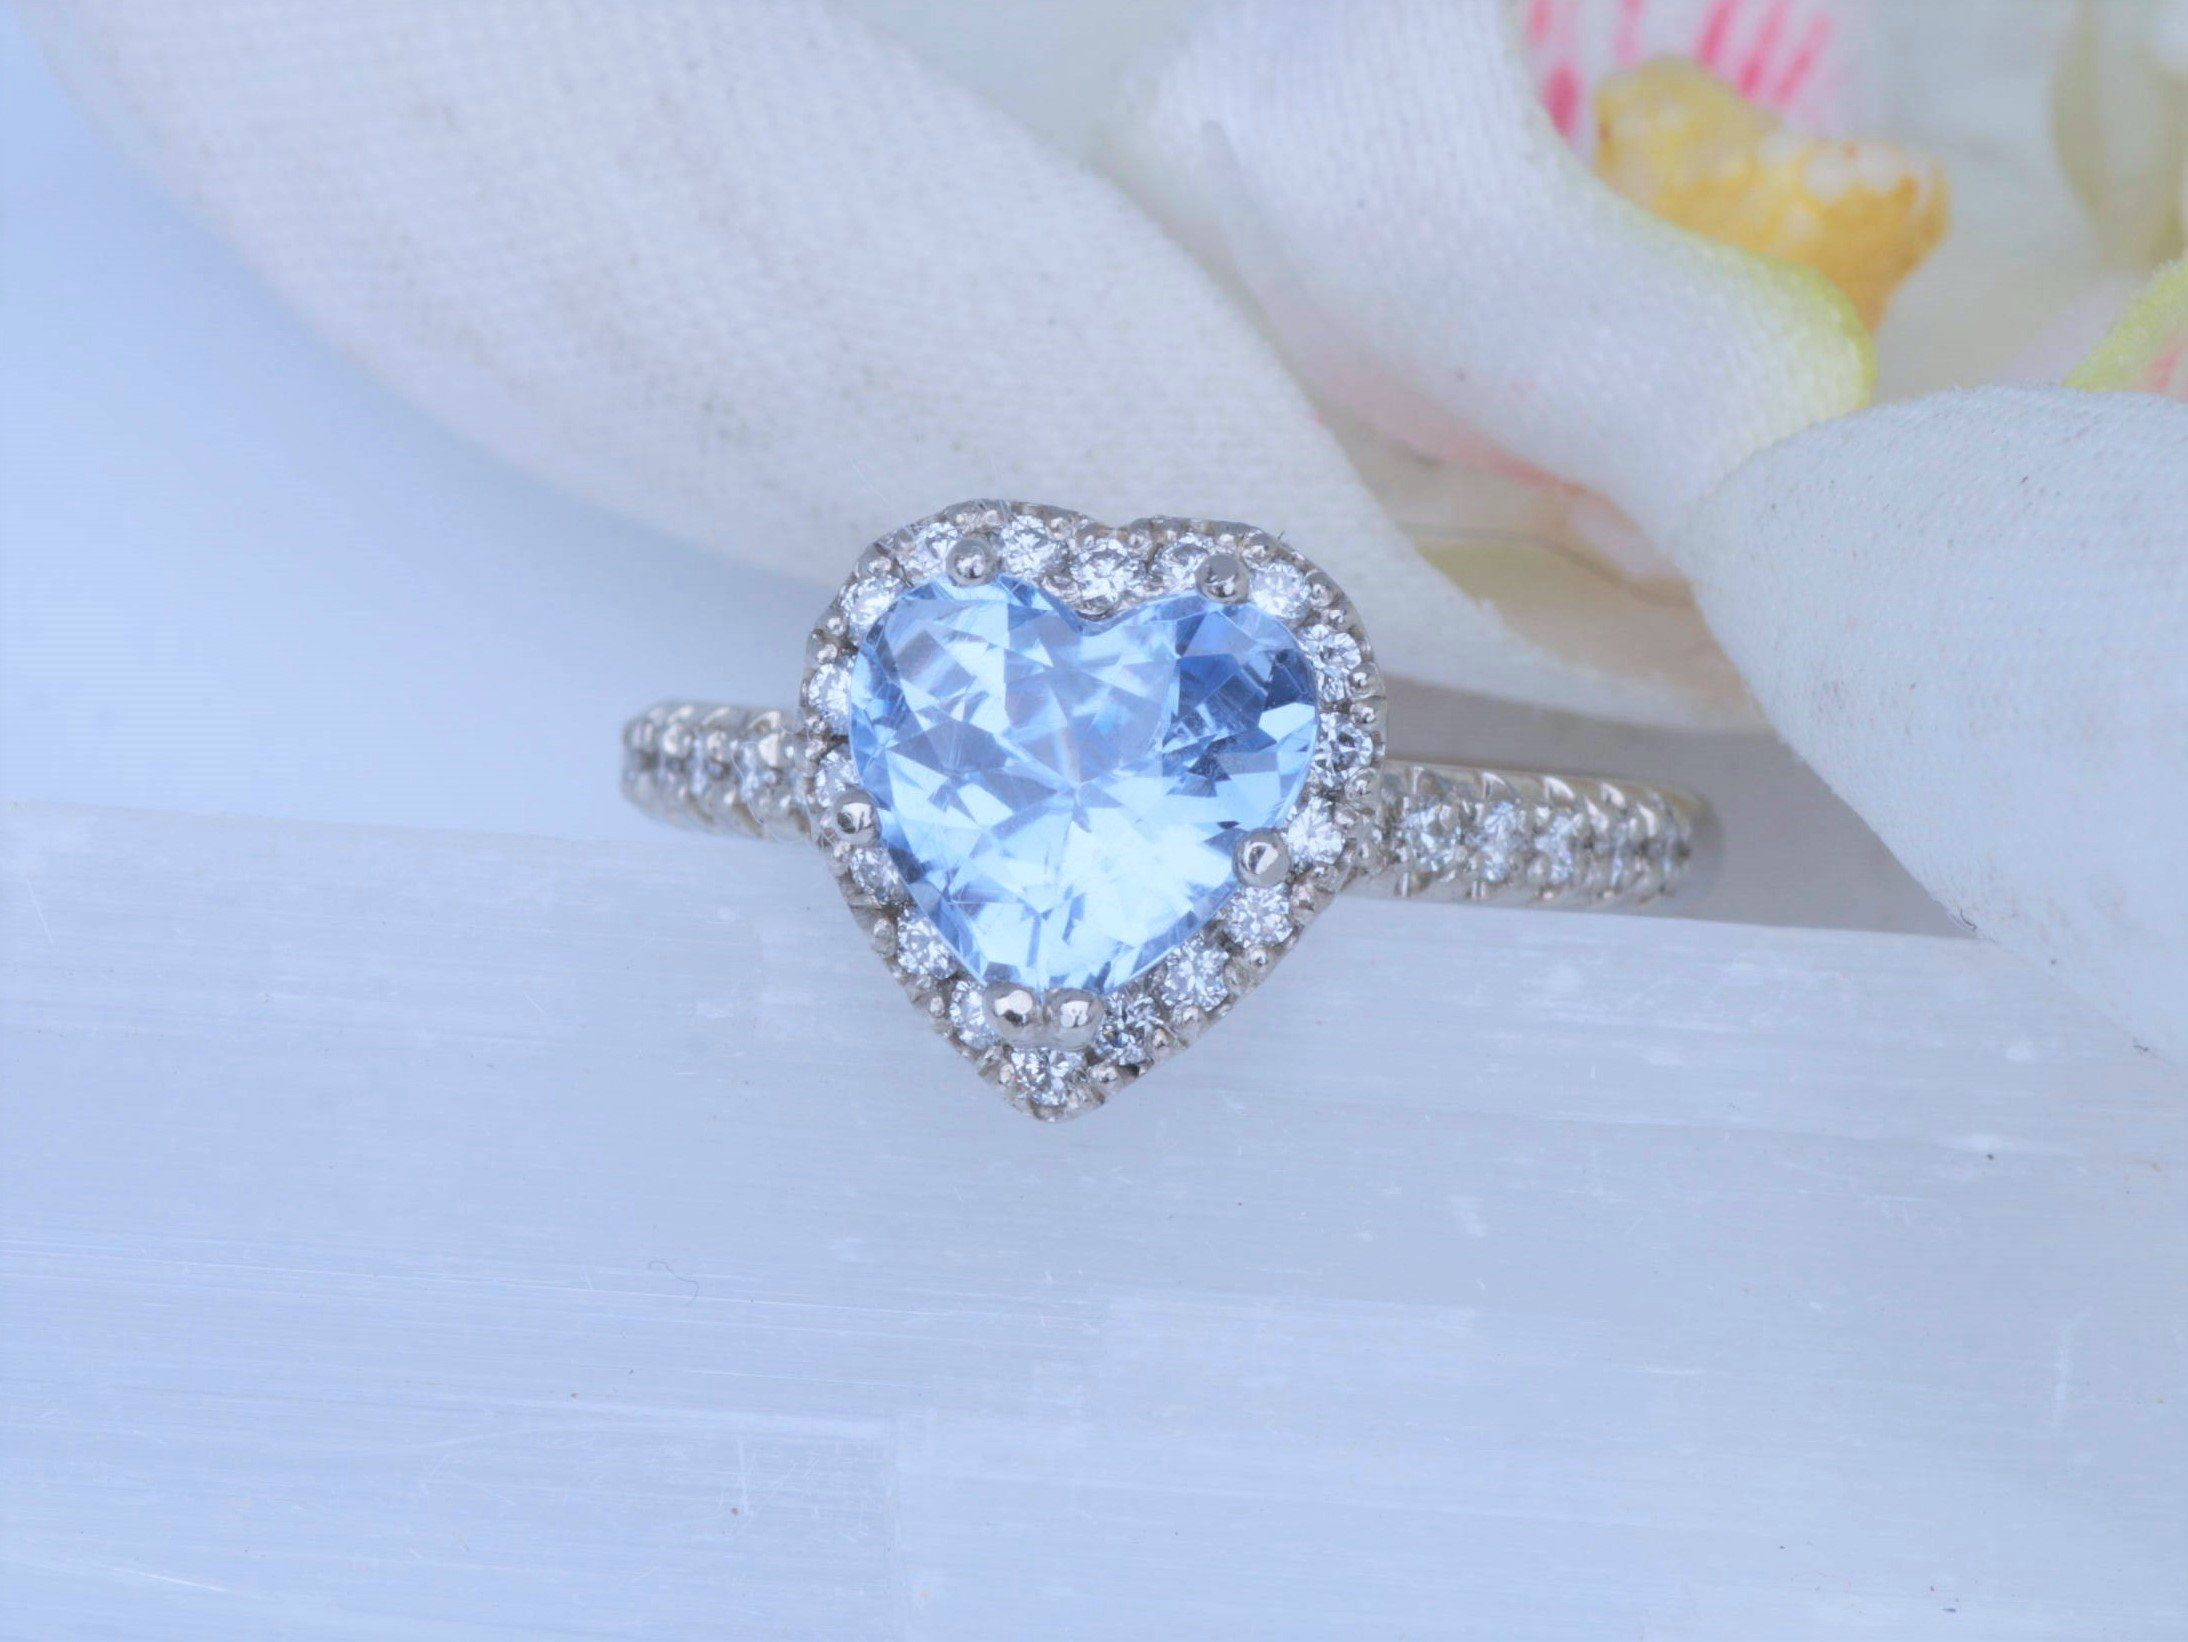 sparkle mumbaistockholm so product petite sapphire solitaire tiny not blue light